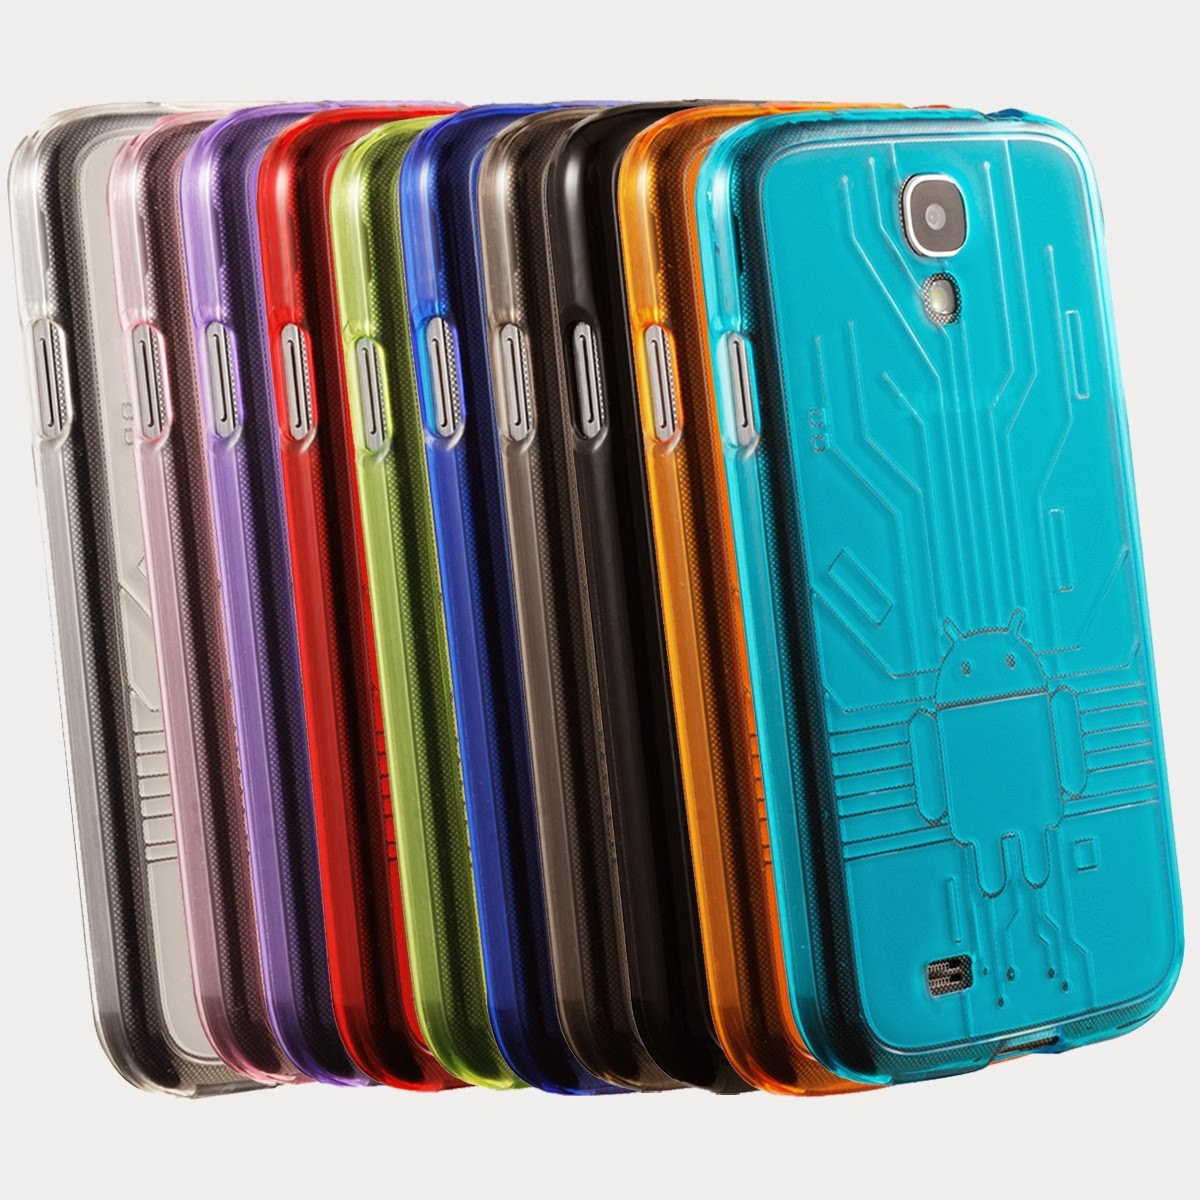 Green Galaxy S4 For samsung galaxy s4;this